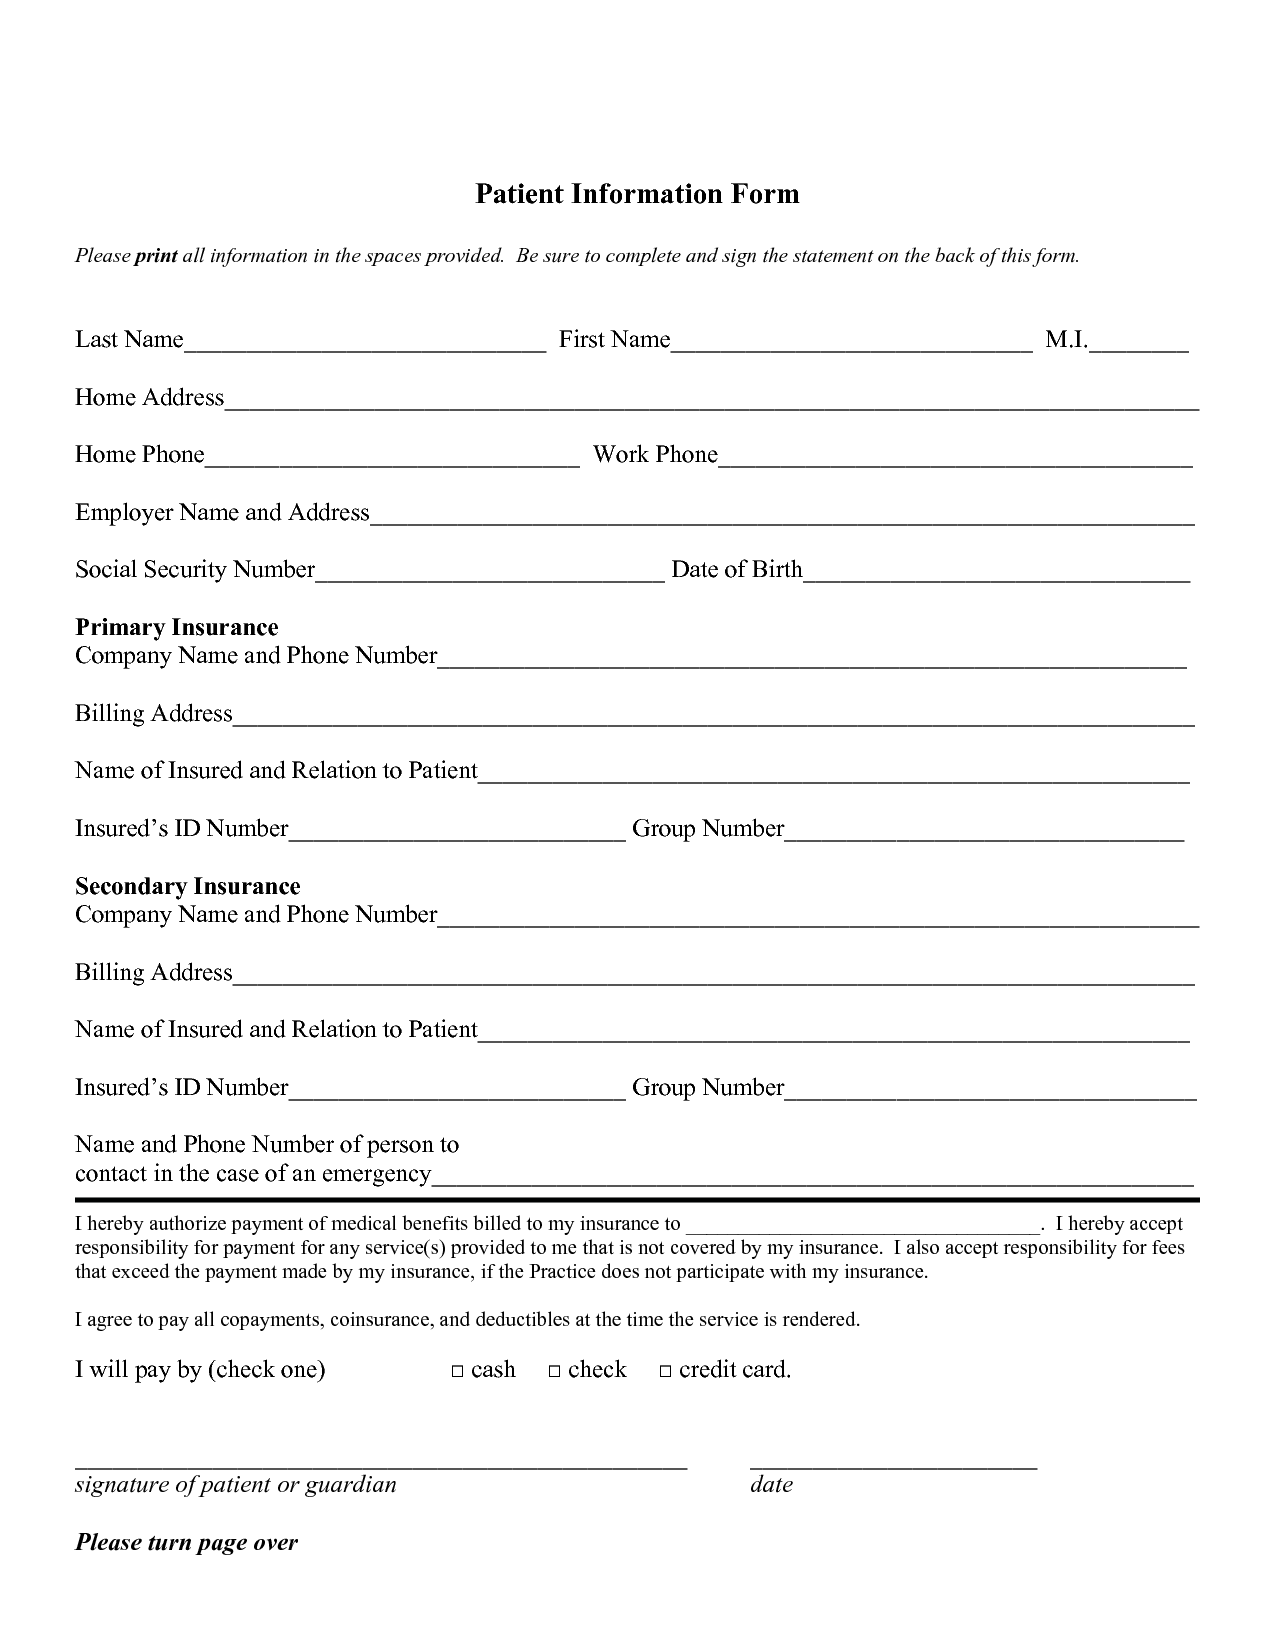 template for patient information sheet - free personal information forms patient information form